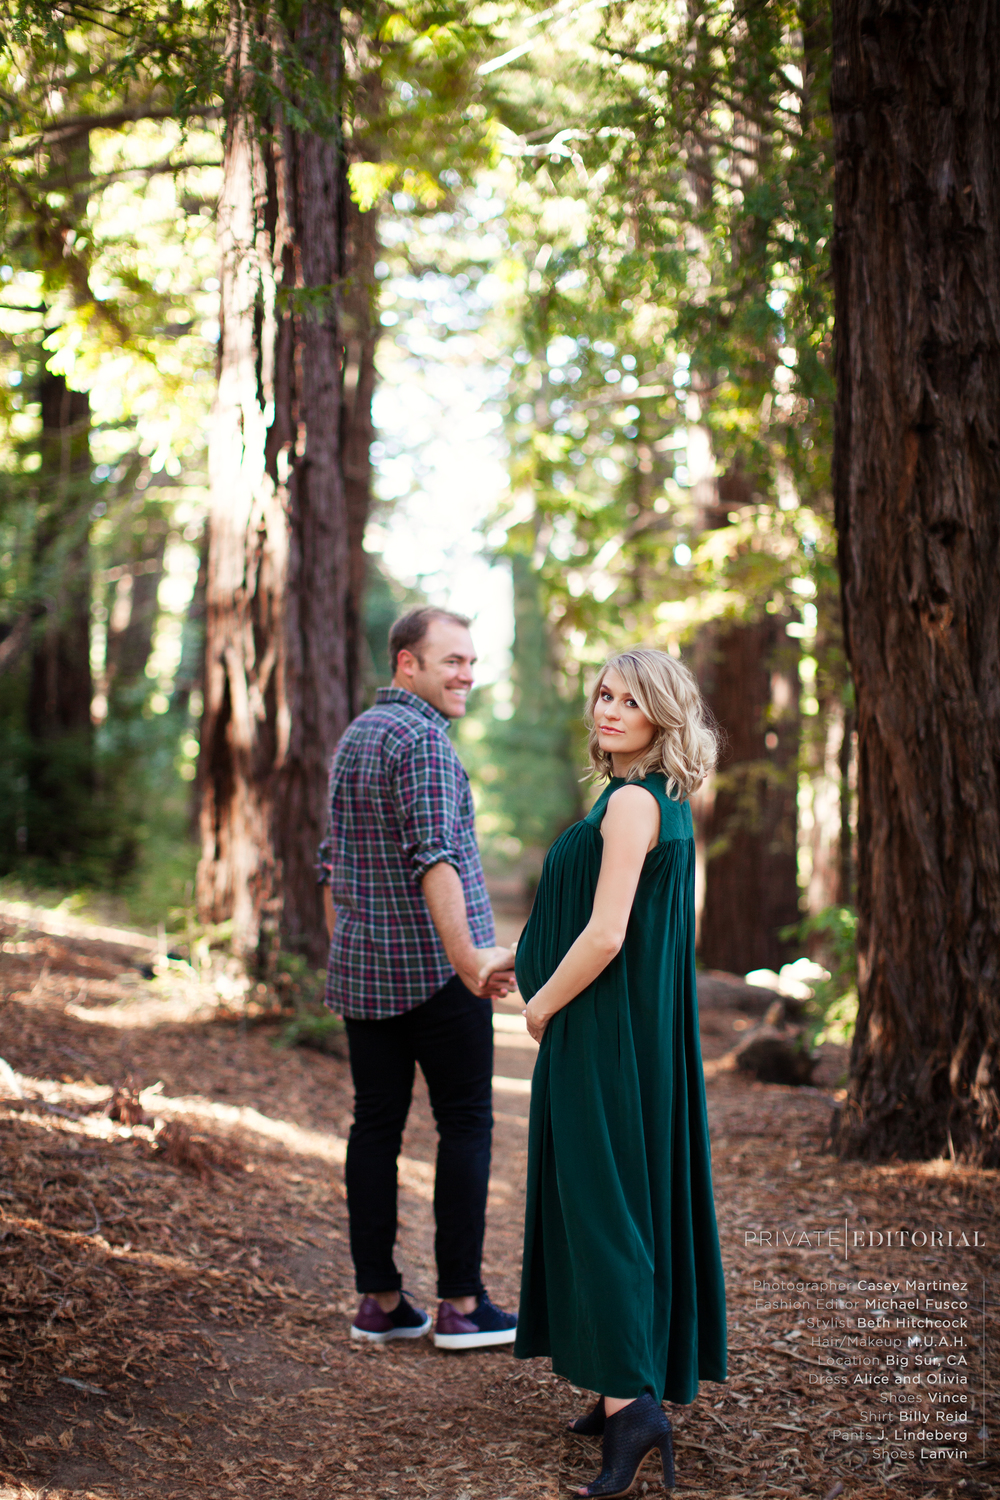 big-sur-maternity-photography-styled-couple-private-editorial.jpg